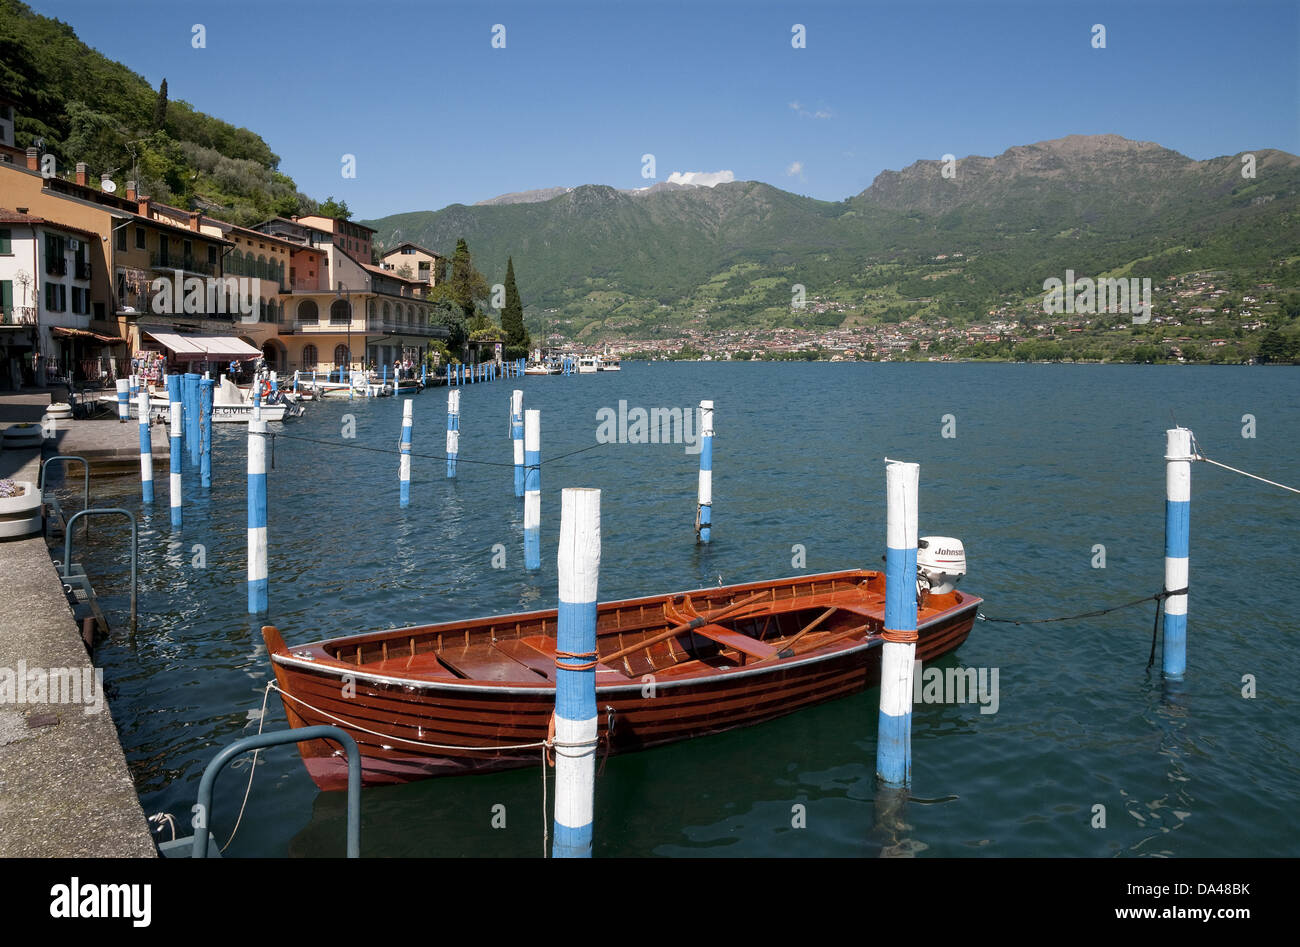 Boats in harbour of town on lake island, Peschiera Maraglio, Monte Isola, Lago d'Iseo, Lombardy, Italy, May Stock Photo